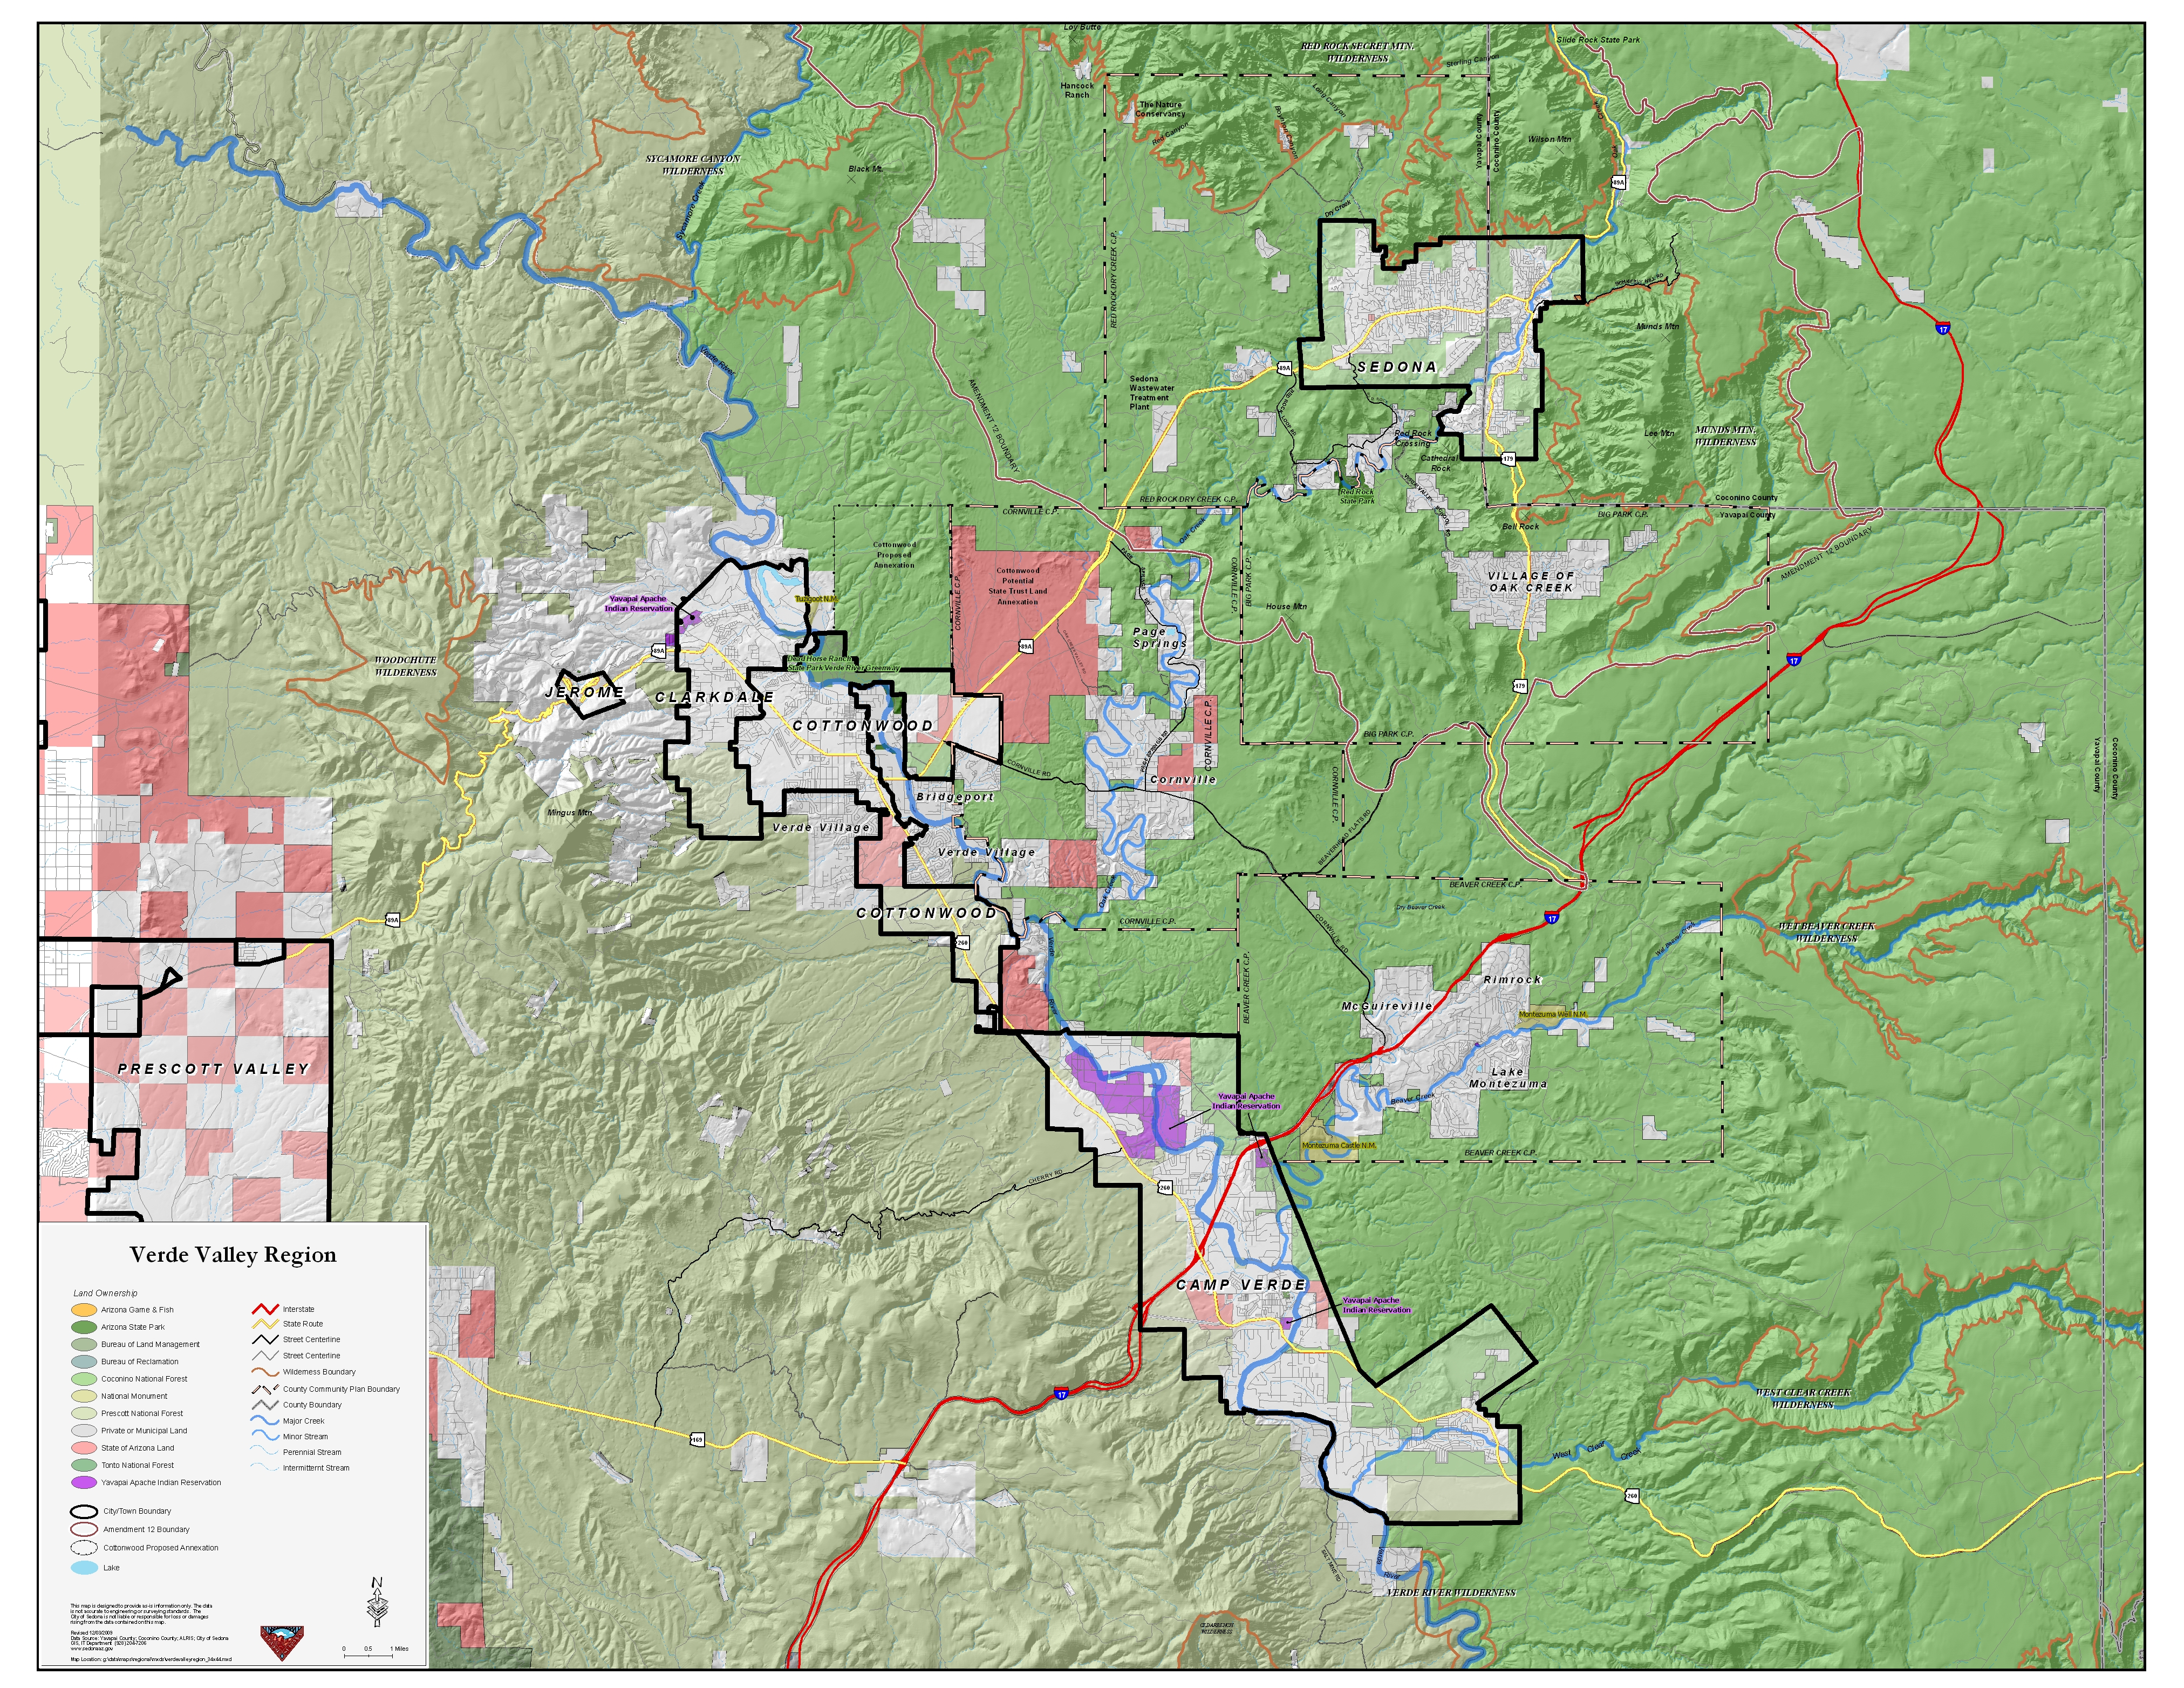 Map Of Arizona Including Sedona.Sedona Verde Valley Maps Maps Of Sedona The Verde Valley And